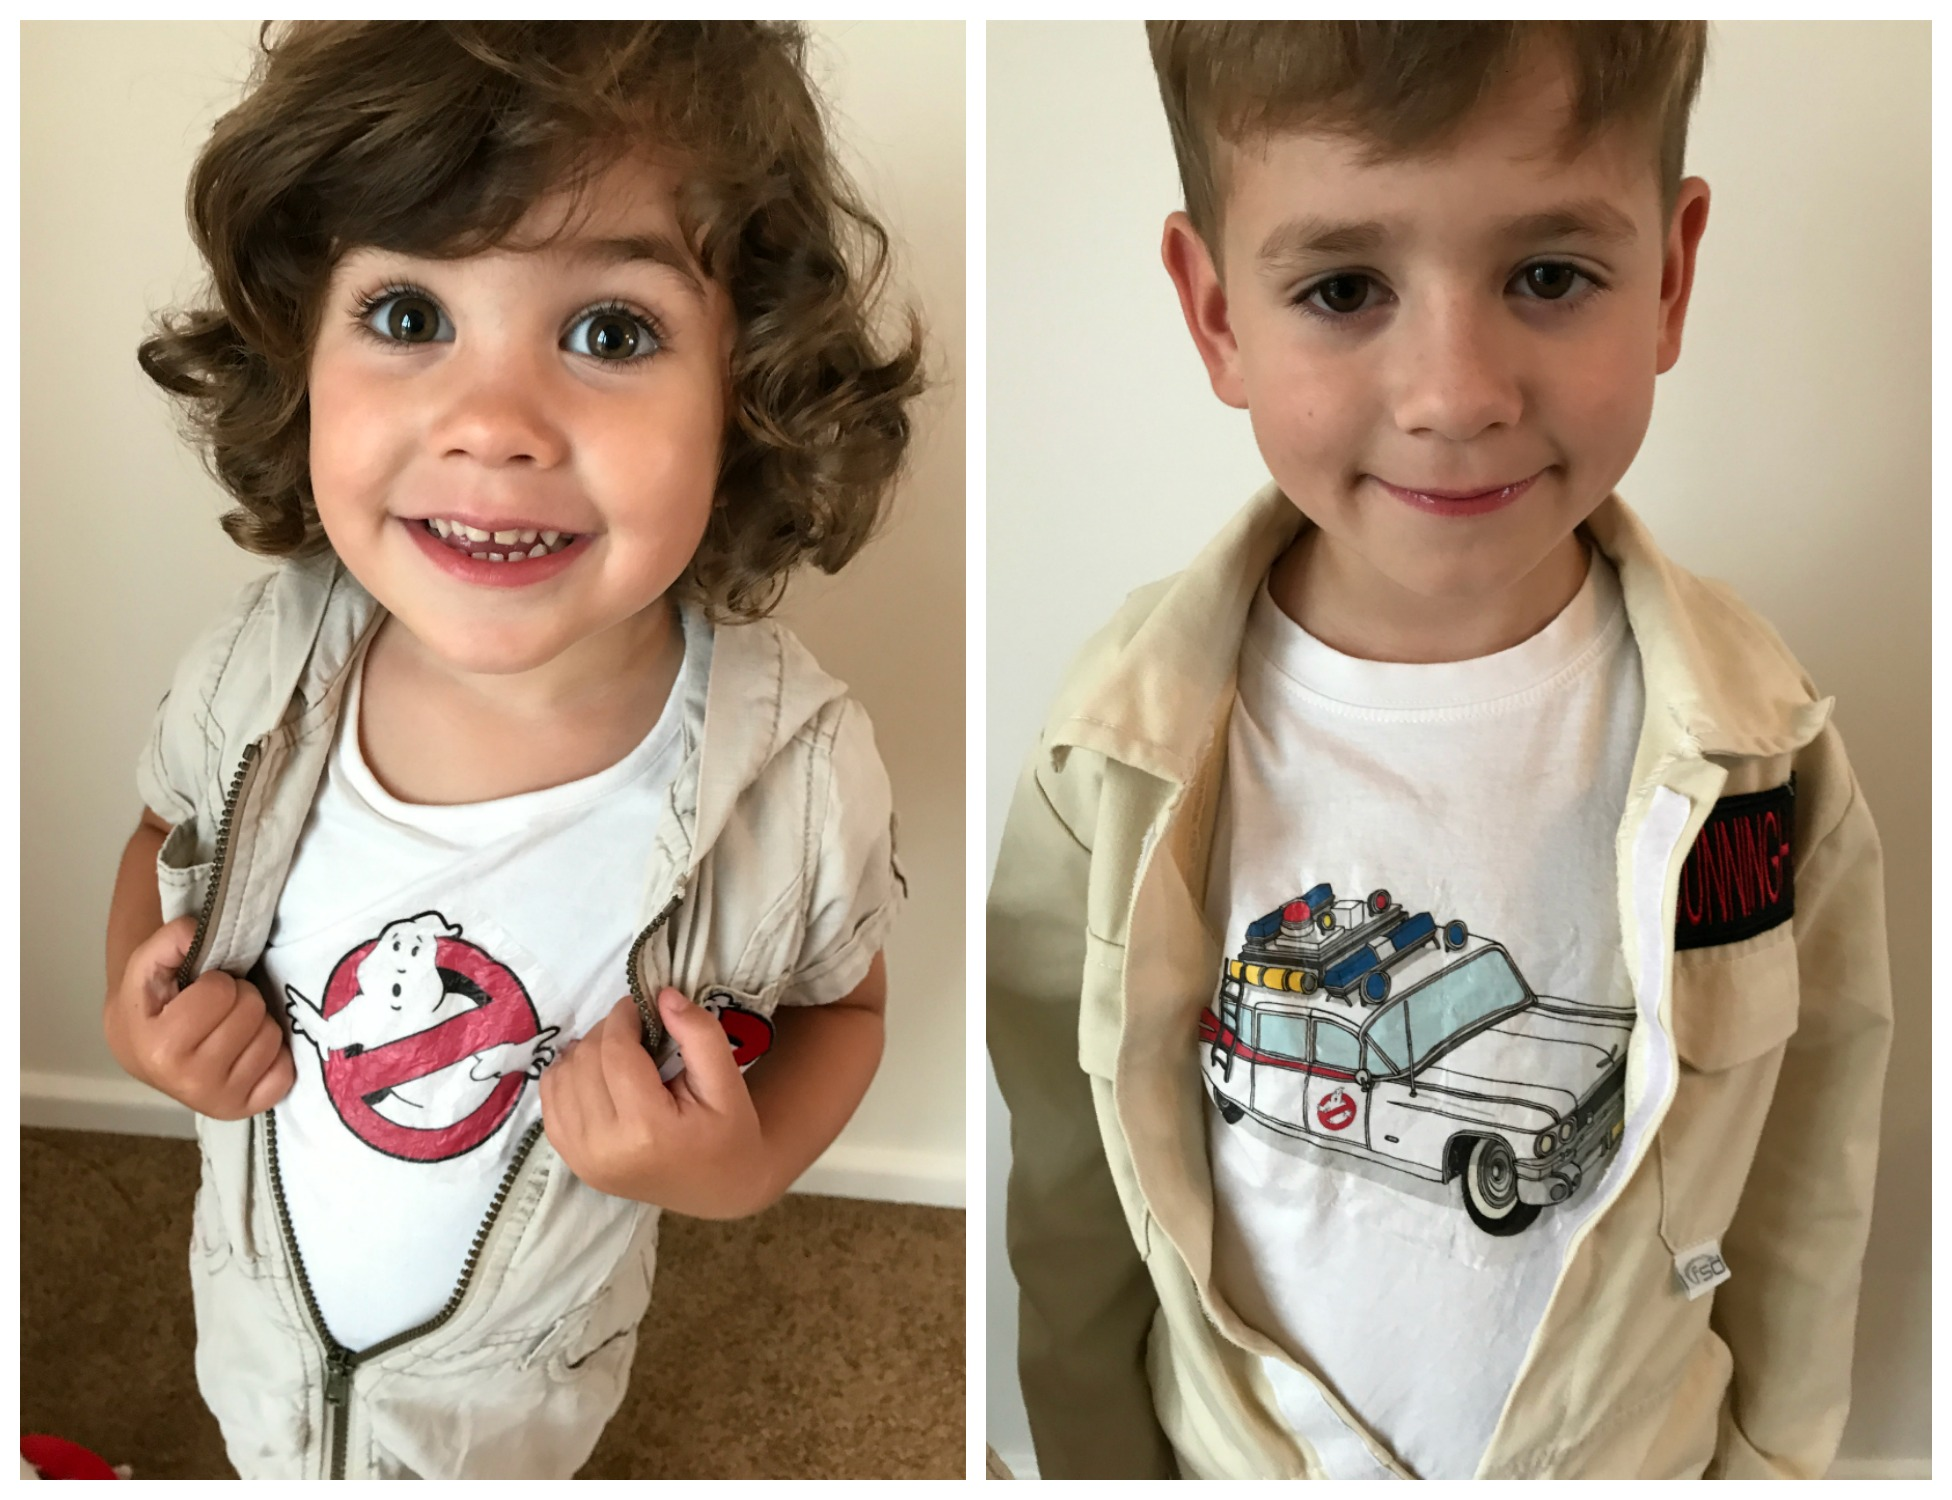 f0a59a164 As an extra I also made the kids some personalised Ghostbusters Proton  permits which also doubled up as a goody bag item for all the kids to take  home with ...